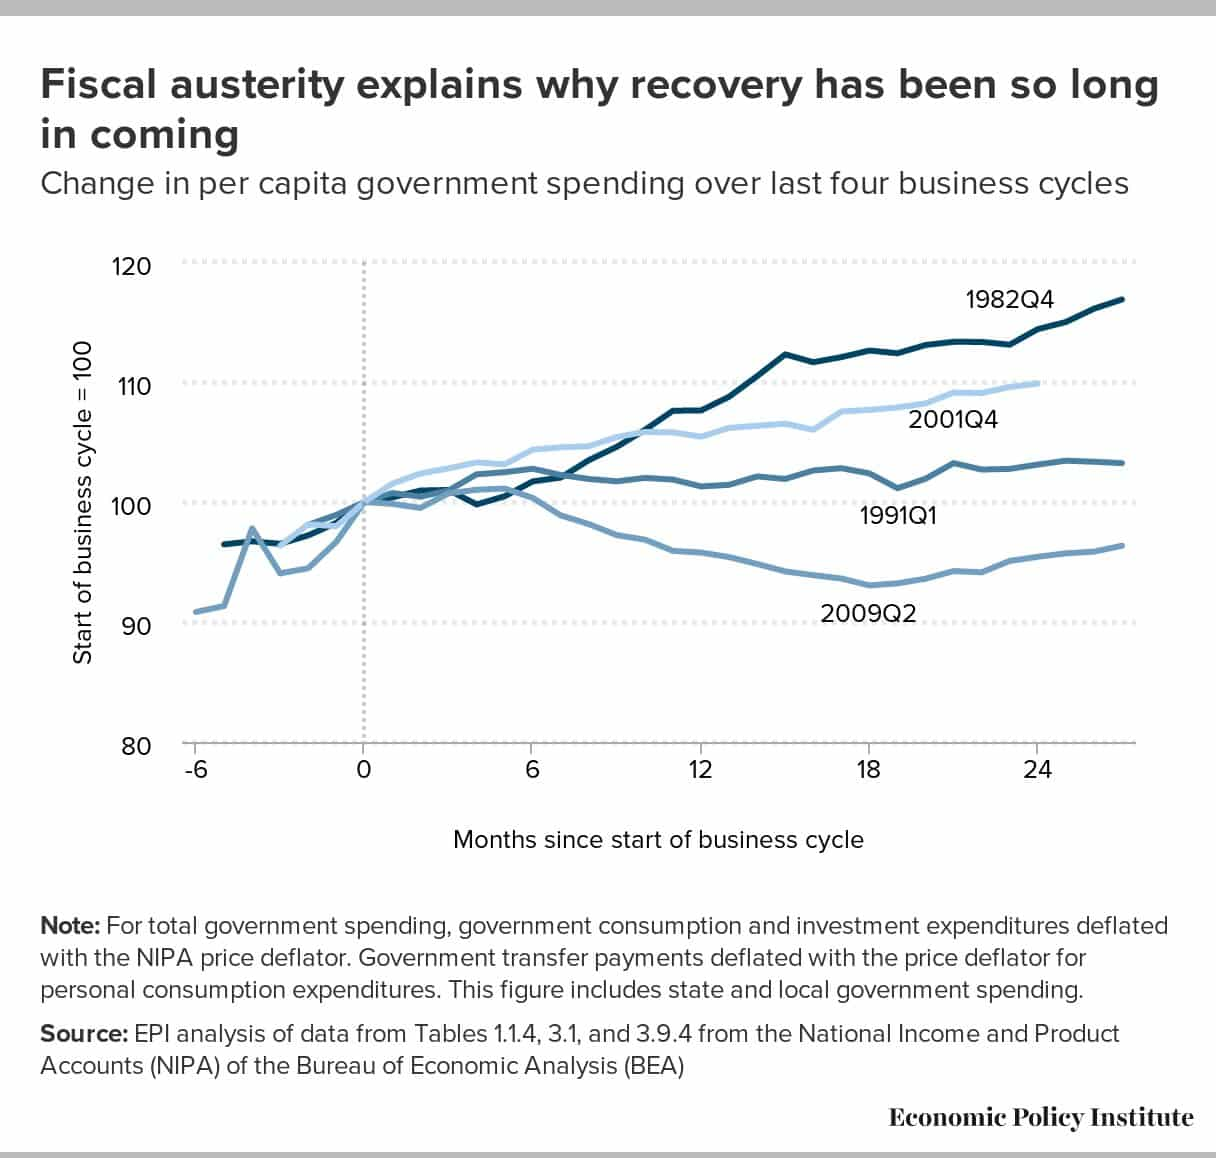 https://t.co/vSdG2DUYOP Fiscal austerity explains why…